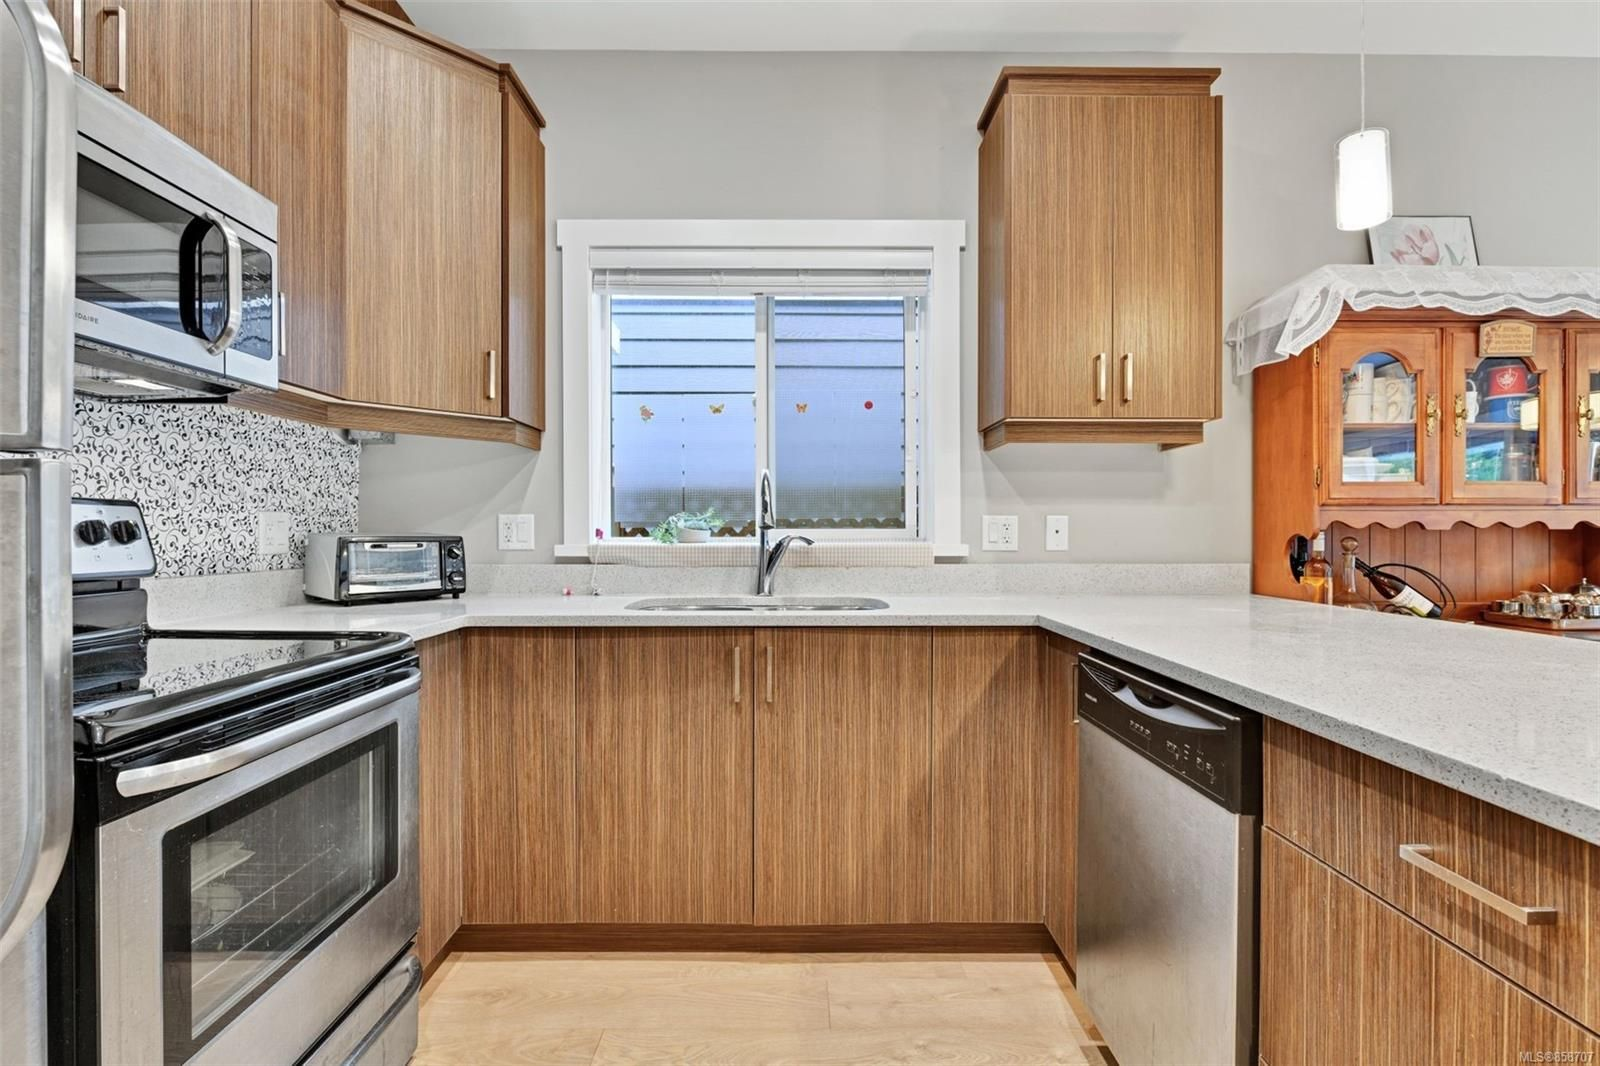 Photo 9: Photos: 1262 McLeod Pl in : La Happy Valley House for sale (Langford)  : MLS®# 858707